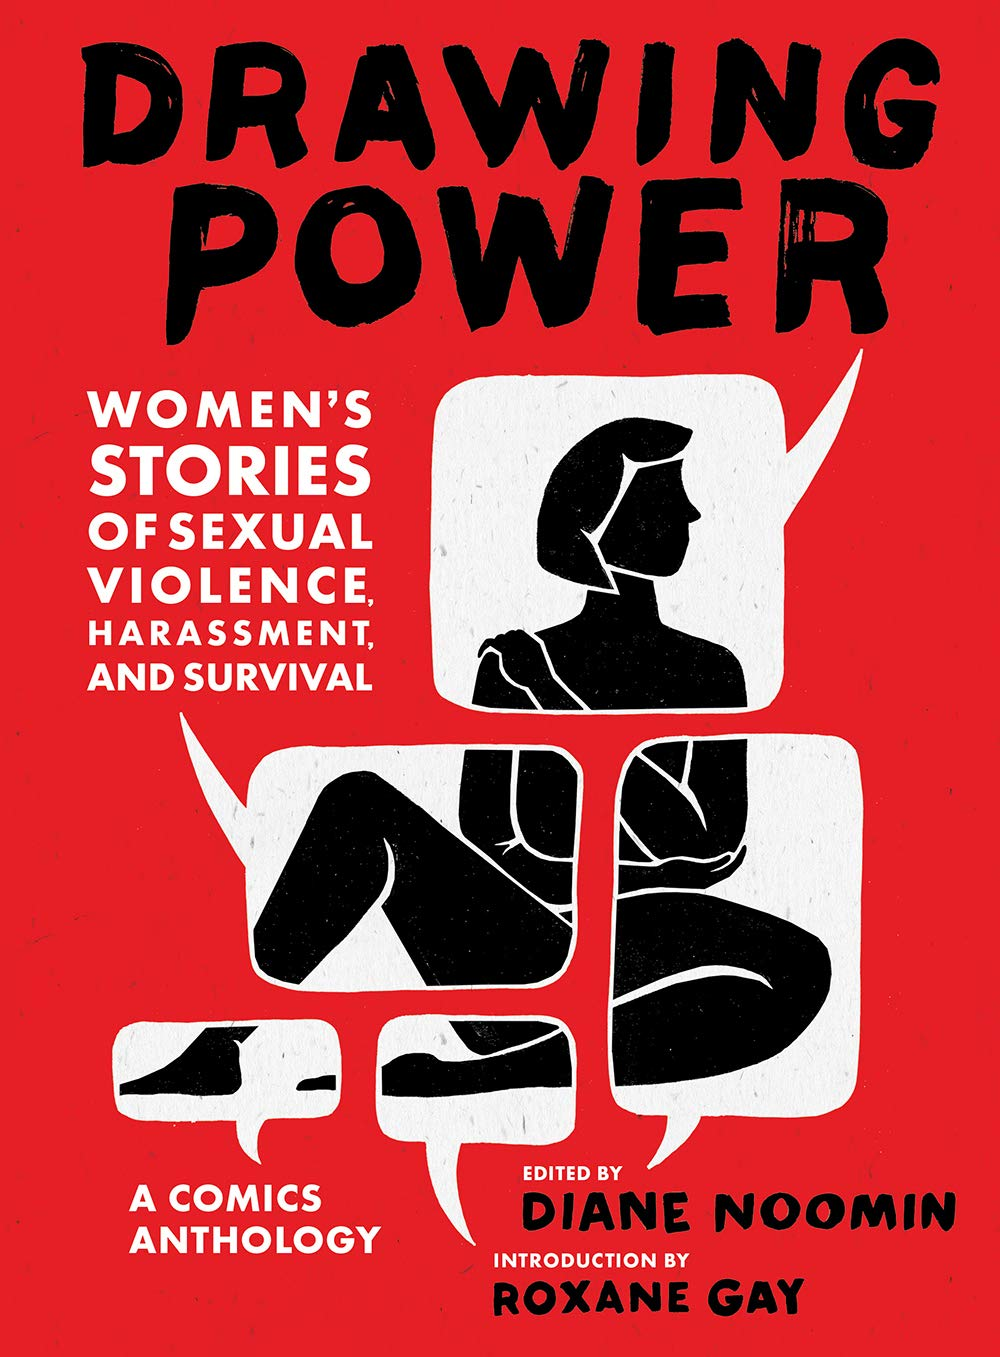 Drawing-Power-Womens-Stories-of-Sexual-Violence-Harassment-and-Survival-edited-by-Diane-Noomin-